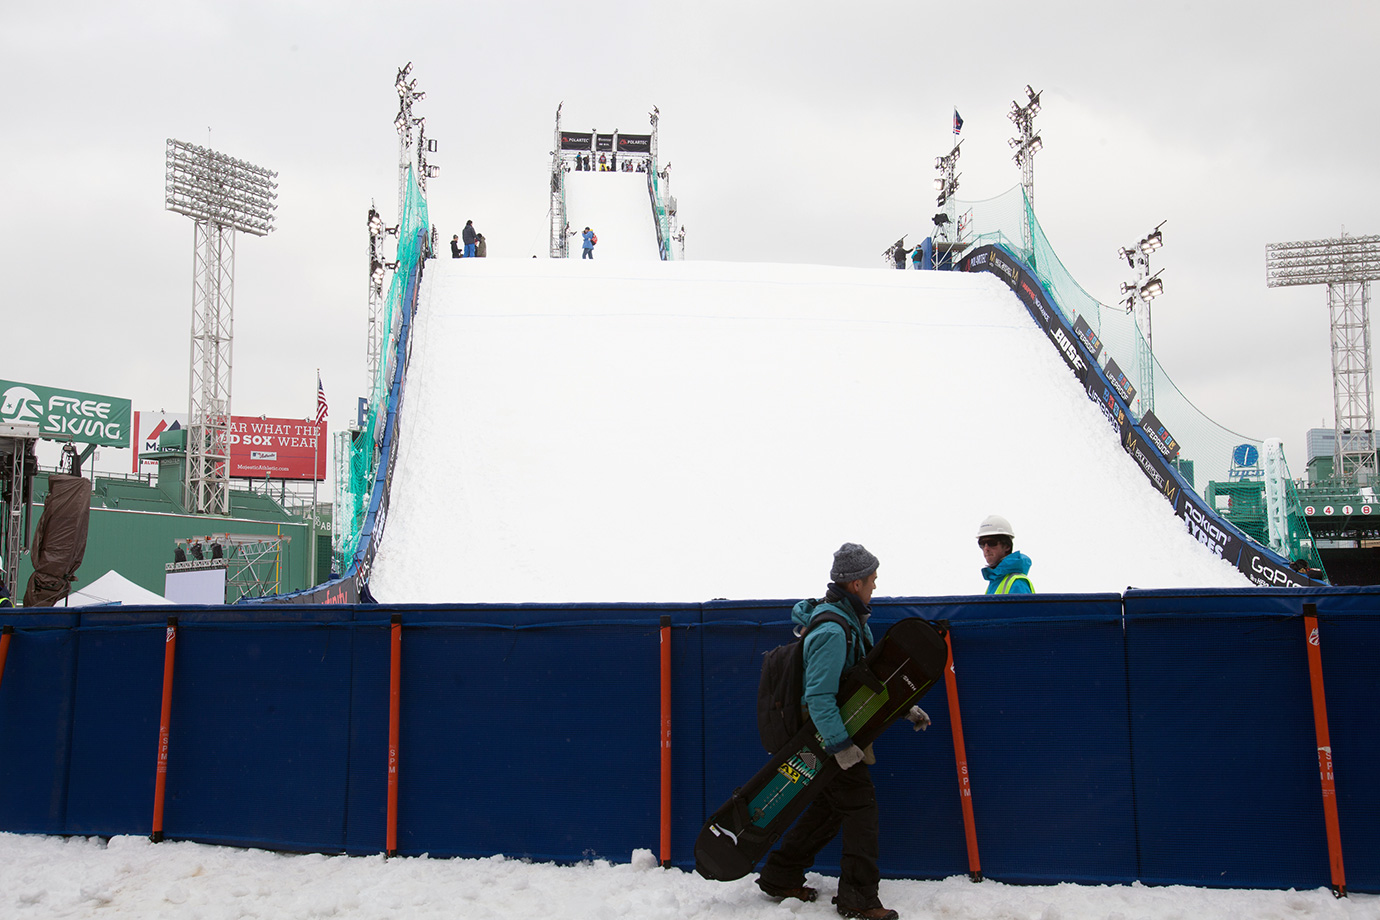 Athletes practice on the ramp, sizing up the man-made jump and figuring out their plans for the coming event.